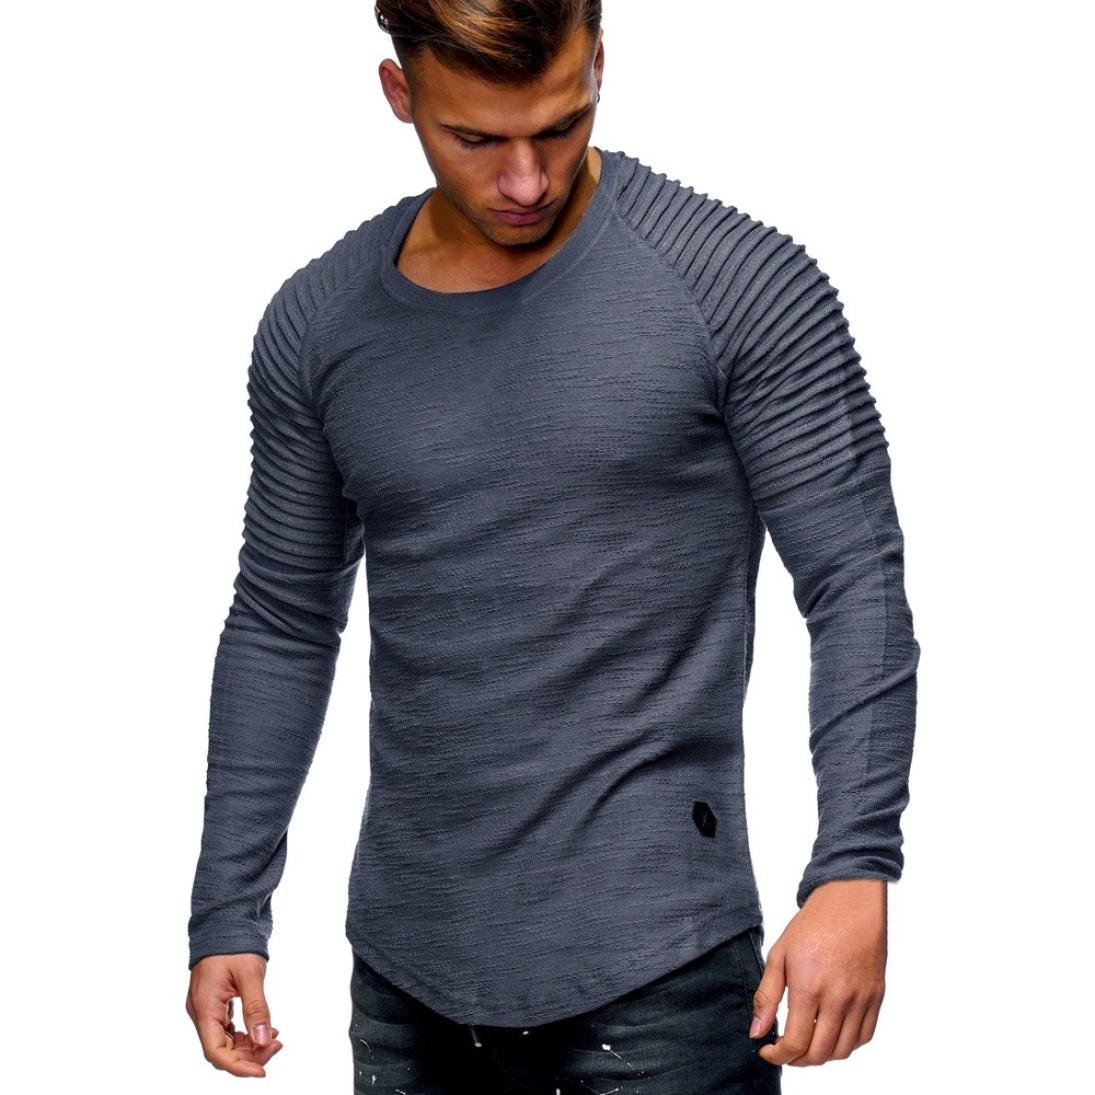 DAYSEVENTH MEN-TOPS Clearance Men's Casual Tops Long-Sleeved T-Shirt Solid Color Fold Round Neck Blouse 442563